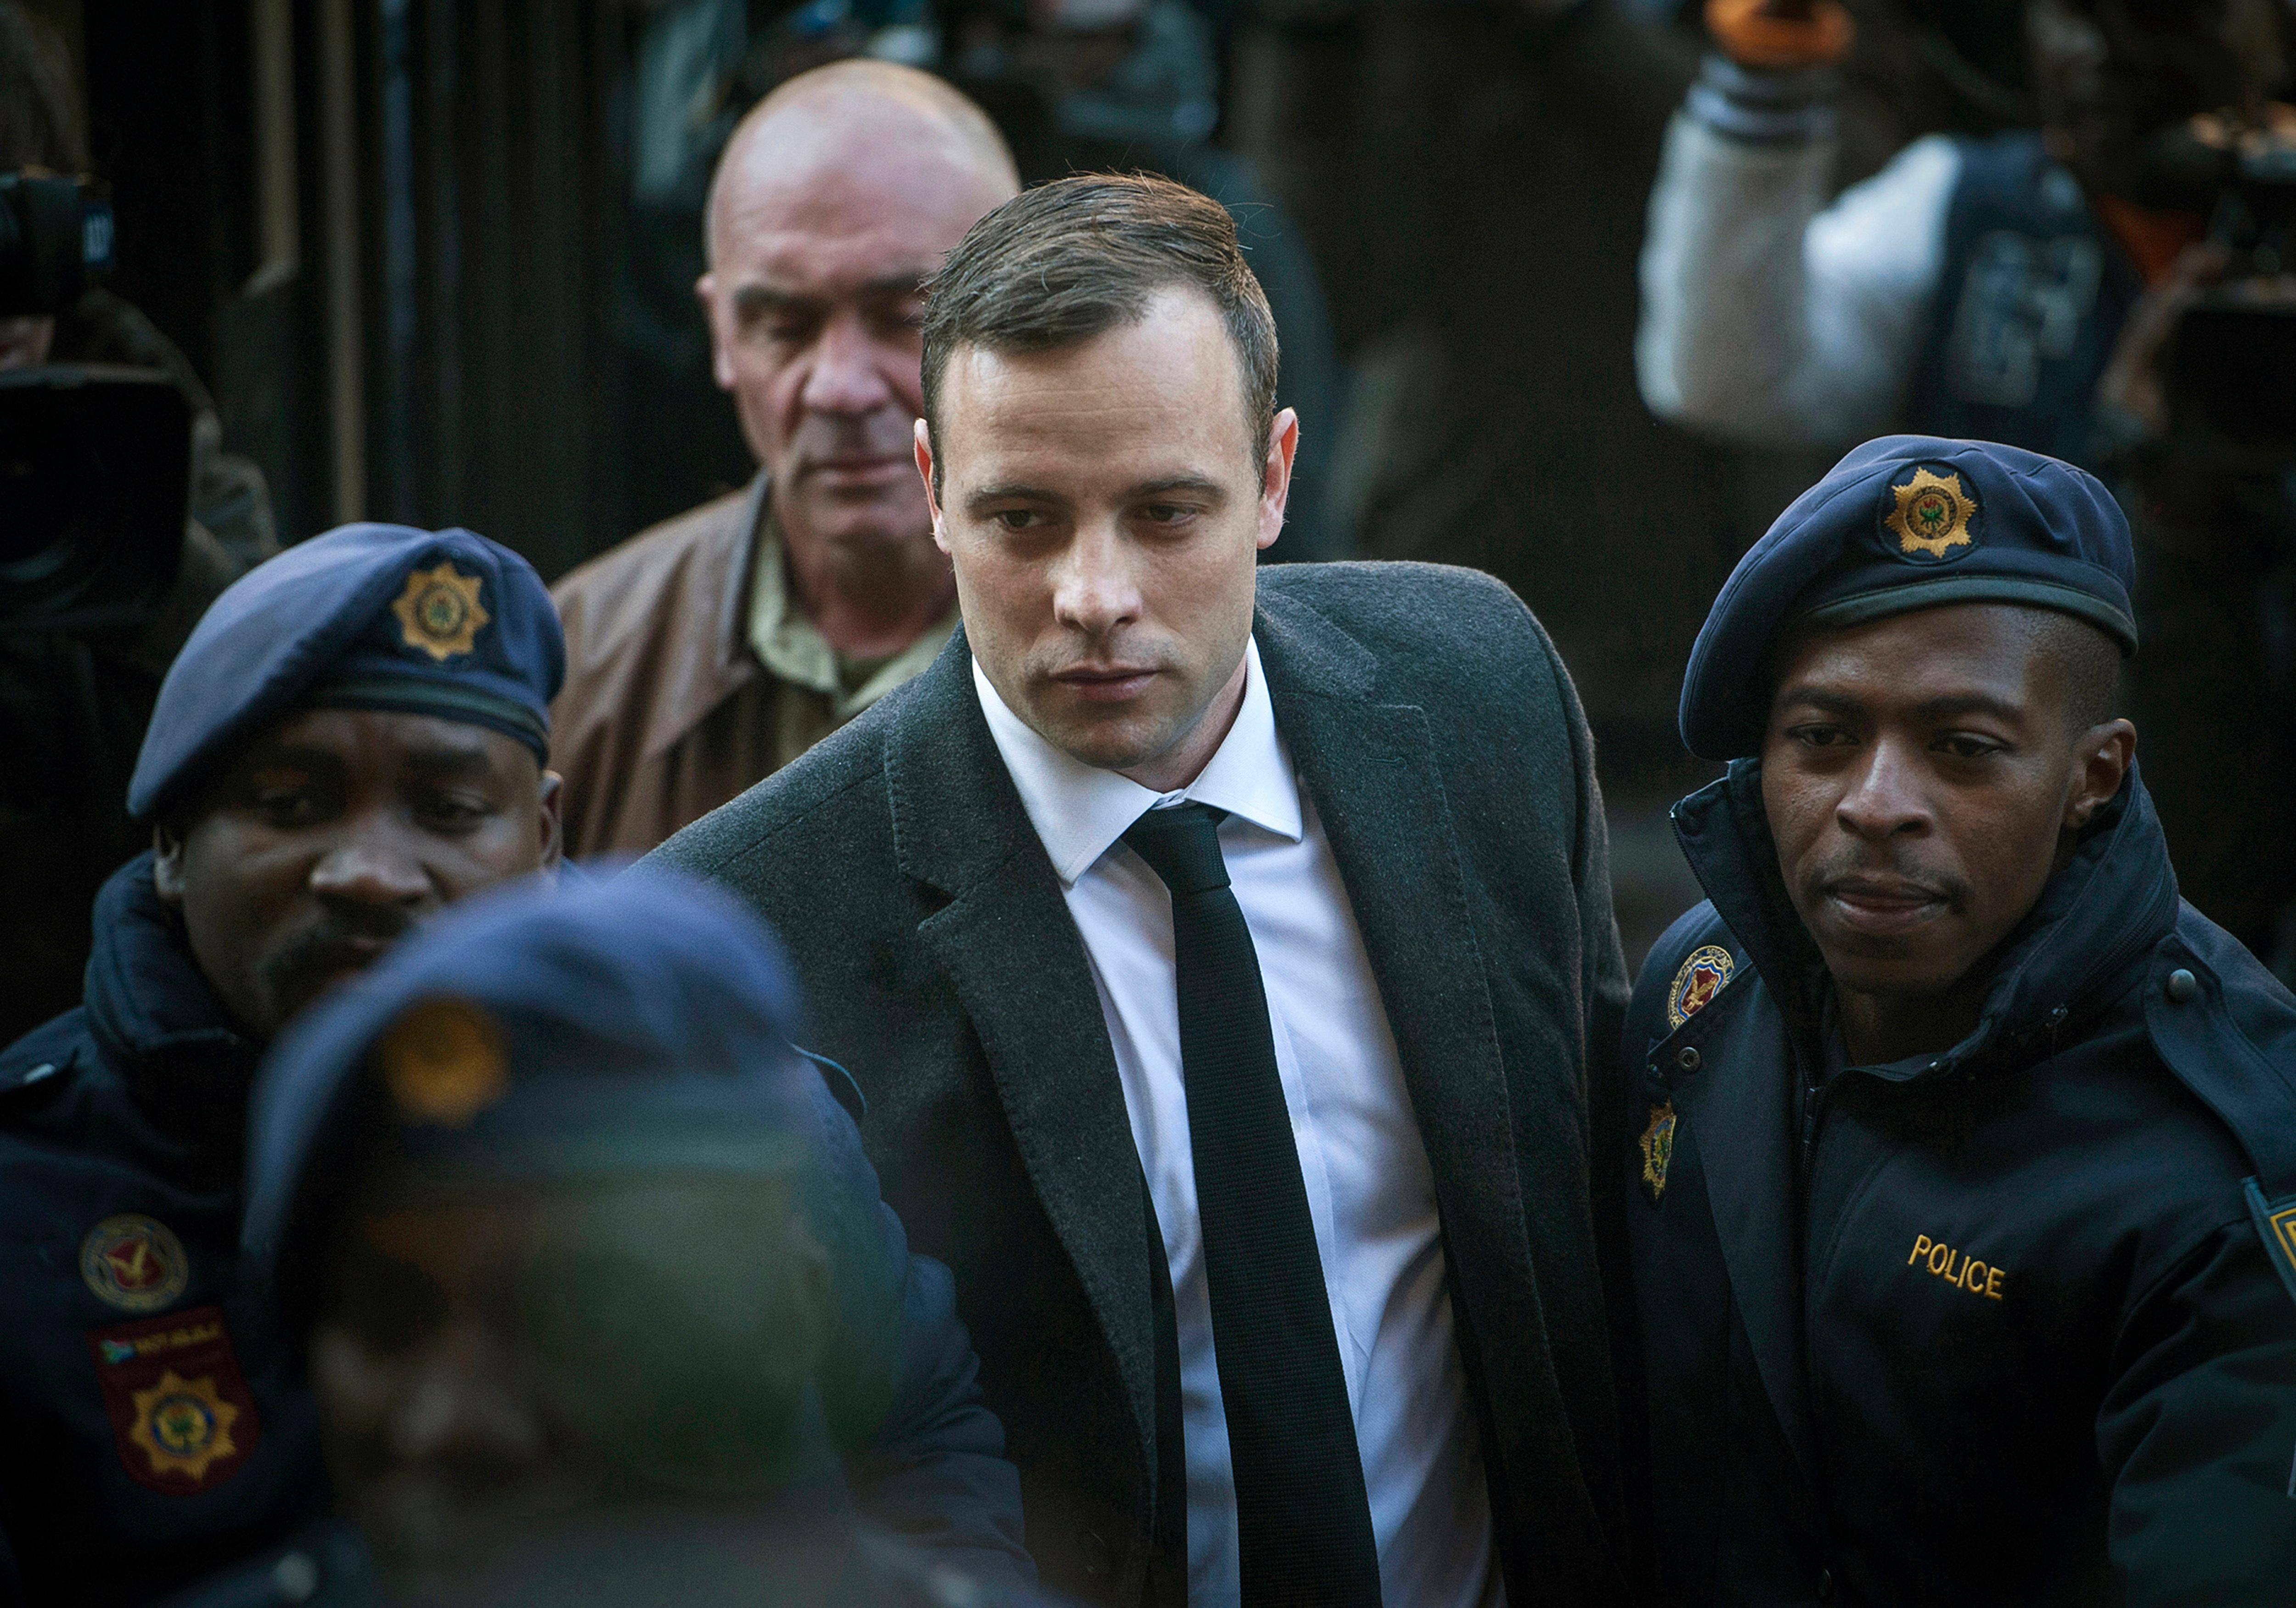 FILE - In this July 6, 2016, file photo, Oscar Pistorius, center, arrives at the High Court in Pretoria, South Africa, for a sentencing hearing for the murder of his girlfriend Reeva Steenkamp in his home on Valentine's Day 2013. (AP Photo/Shiraaz Mohamed, File)